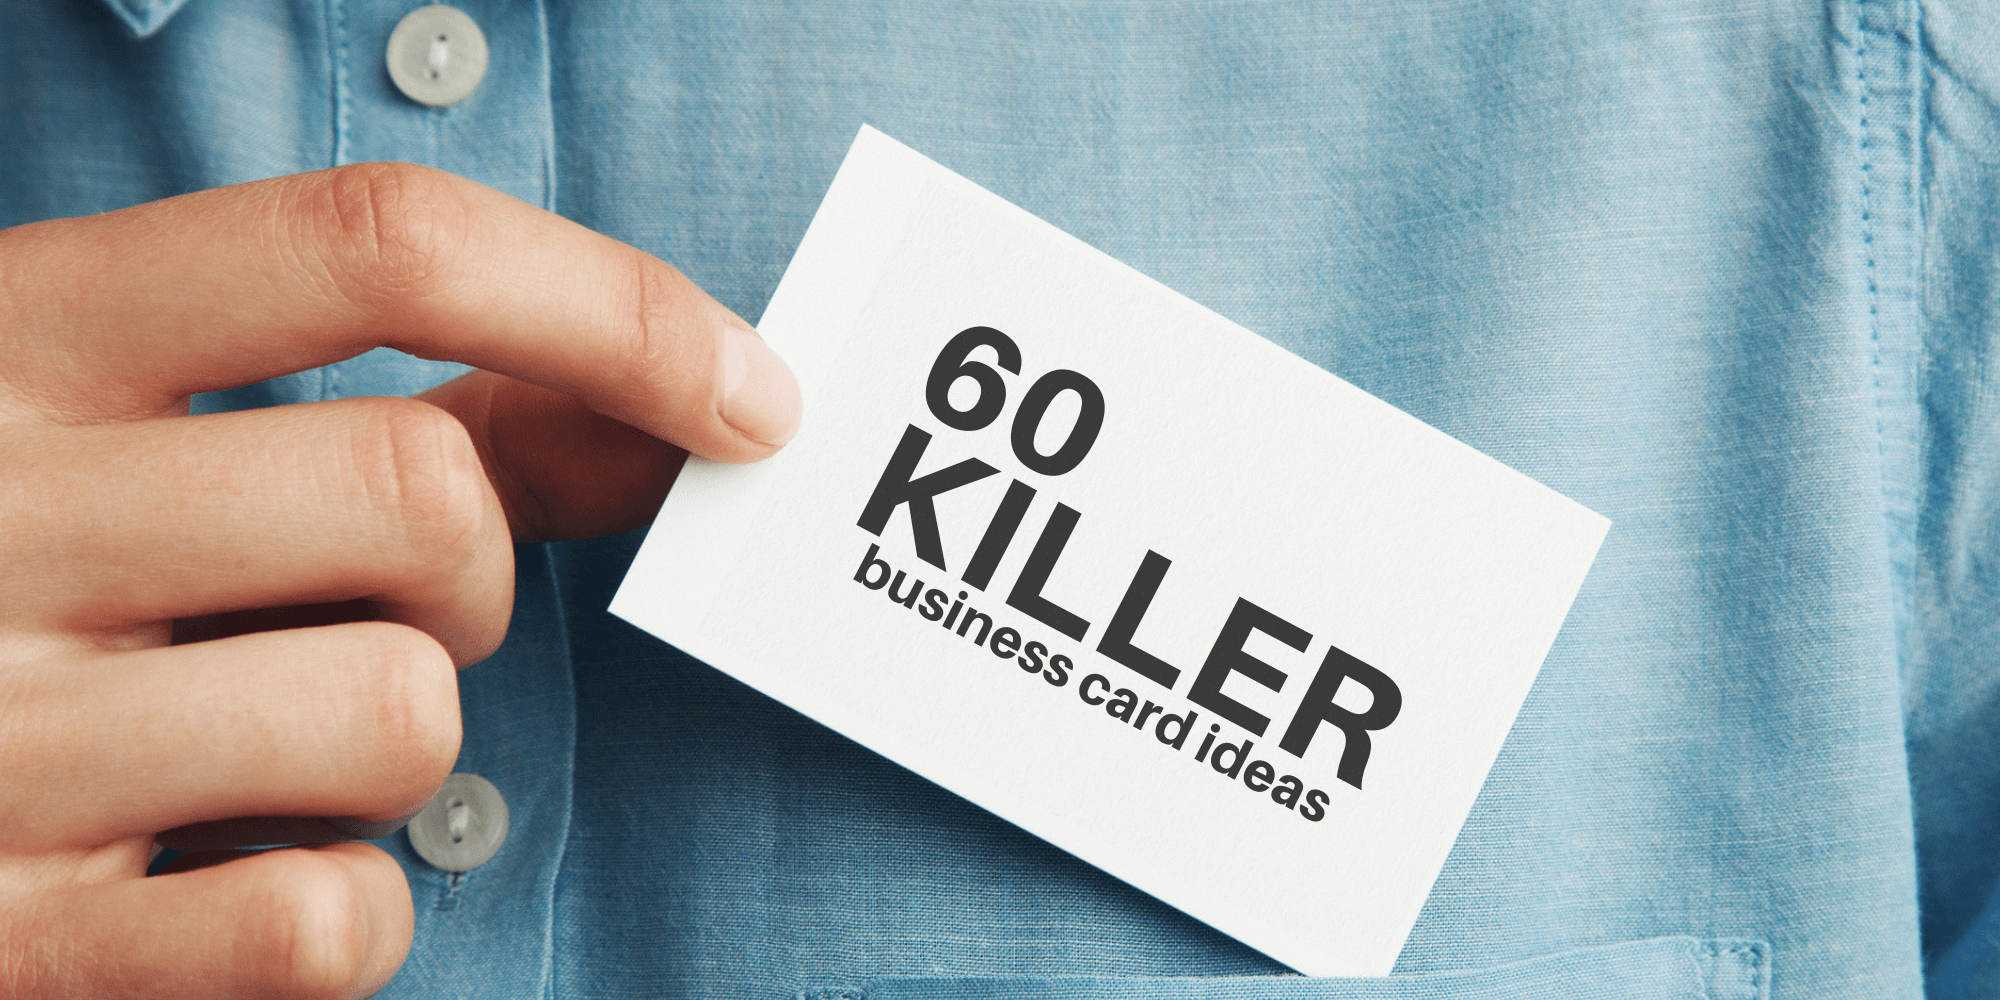 60 Modern Business Cards To Make A Killer First Impression Throughout Freelance Business Card Template